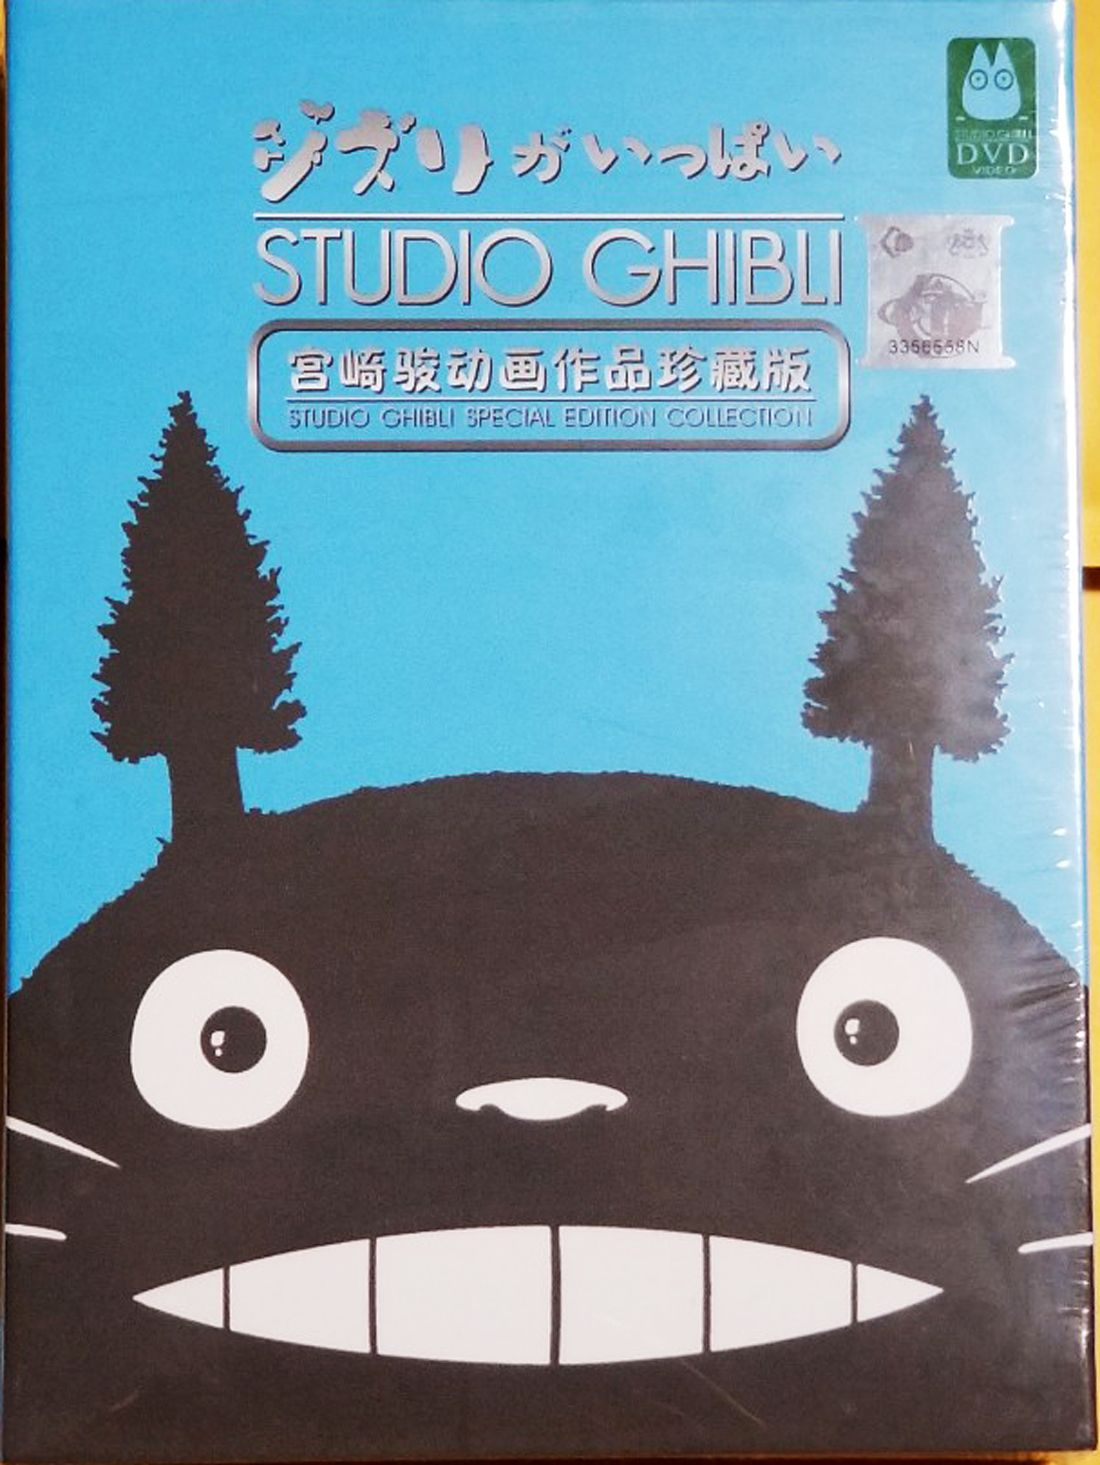 Studio Ghibli 21 Movies Complete Collection English DVD